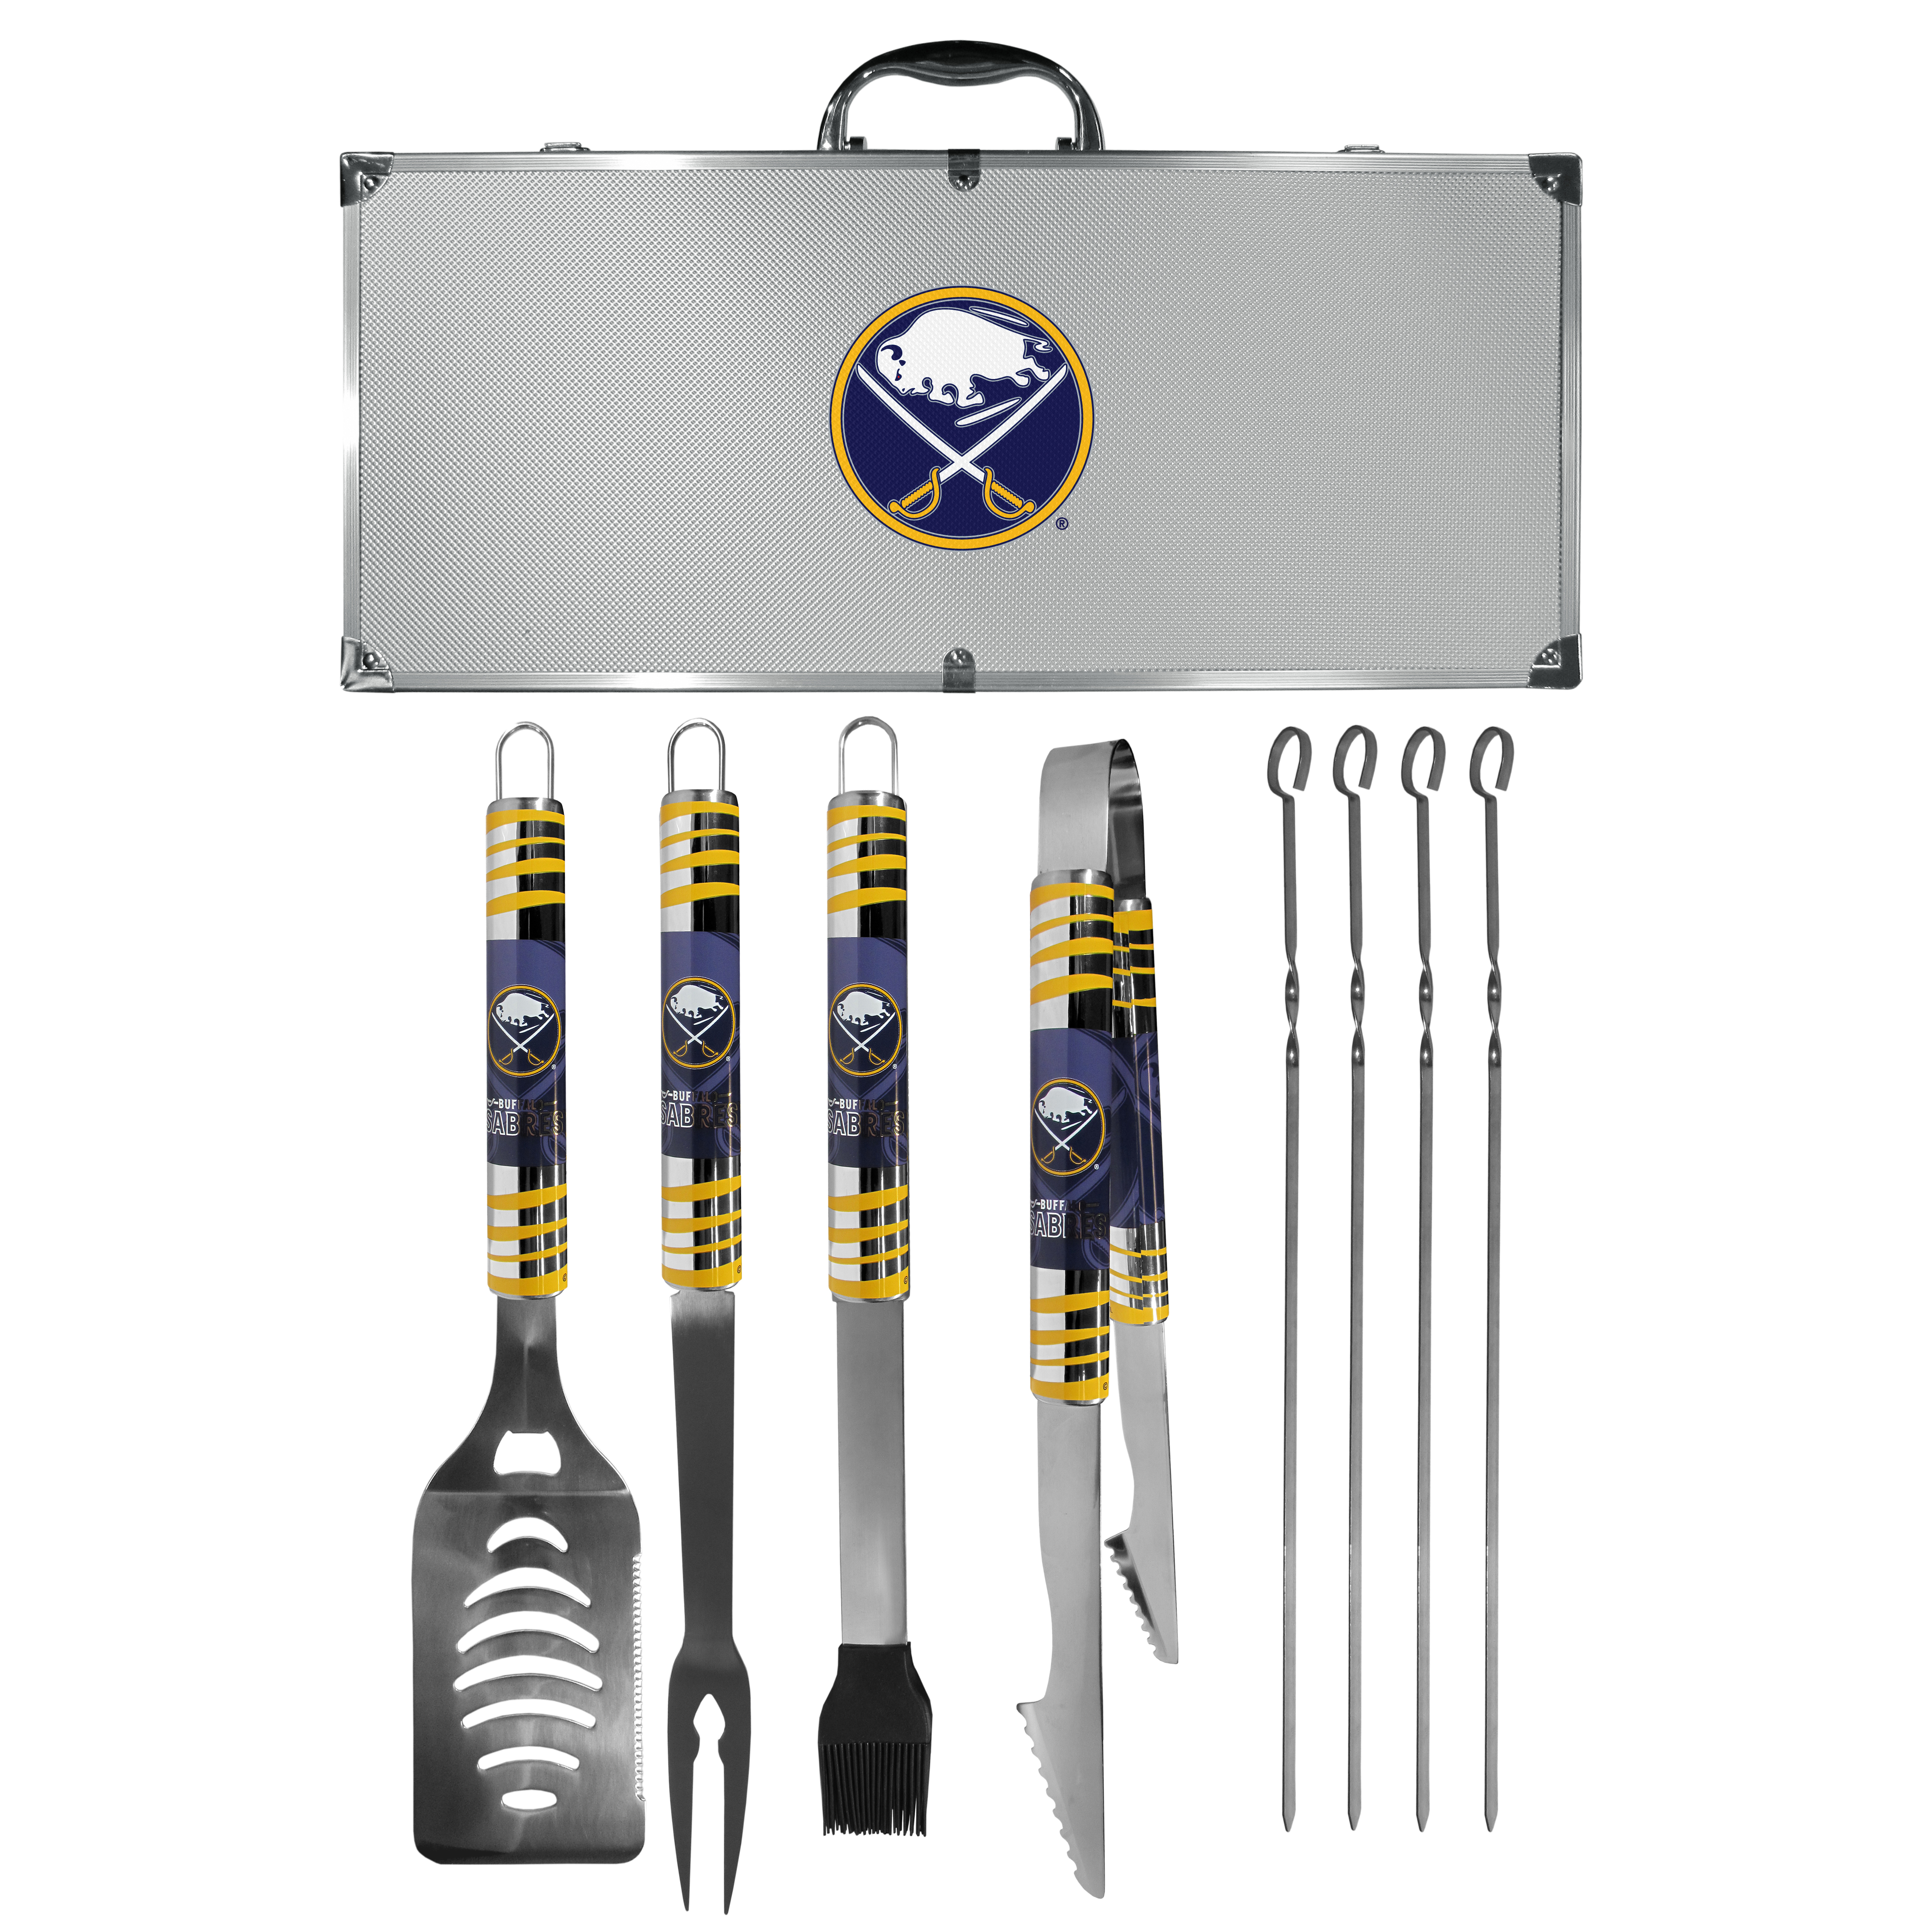 Buffalo Sabres® 8 pc Tailgater BBQ Set - This is the ultimate Buffalo Sabres® tailgate accessory! The high quality, 420 grade stainless steel tools are durable and well-made enough to make even the pickiest grill master smile. This complete grill accessory kit includes; 4 skewers, spatula with bottle opener and serrated knife edge, basting brush, tongs and a fork. The 18 inch metal carrying case is perfect for great outdoor use making grilling an ease while camping, tailgating or while having a game day party on your patio. The tools are 17 inches long and feature vivid team graphics. The metal case features a large team emblem with exceptional detail. This high-end men's gift is sure to be a hit as a present on Father's Day or Christmas.